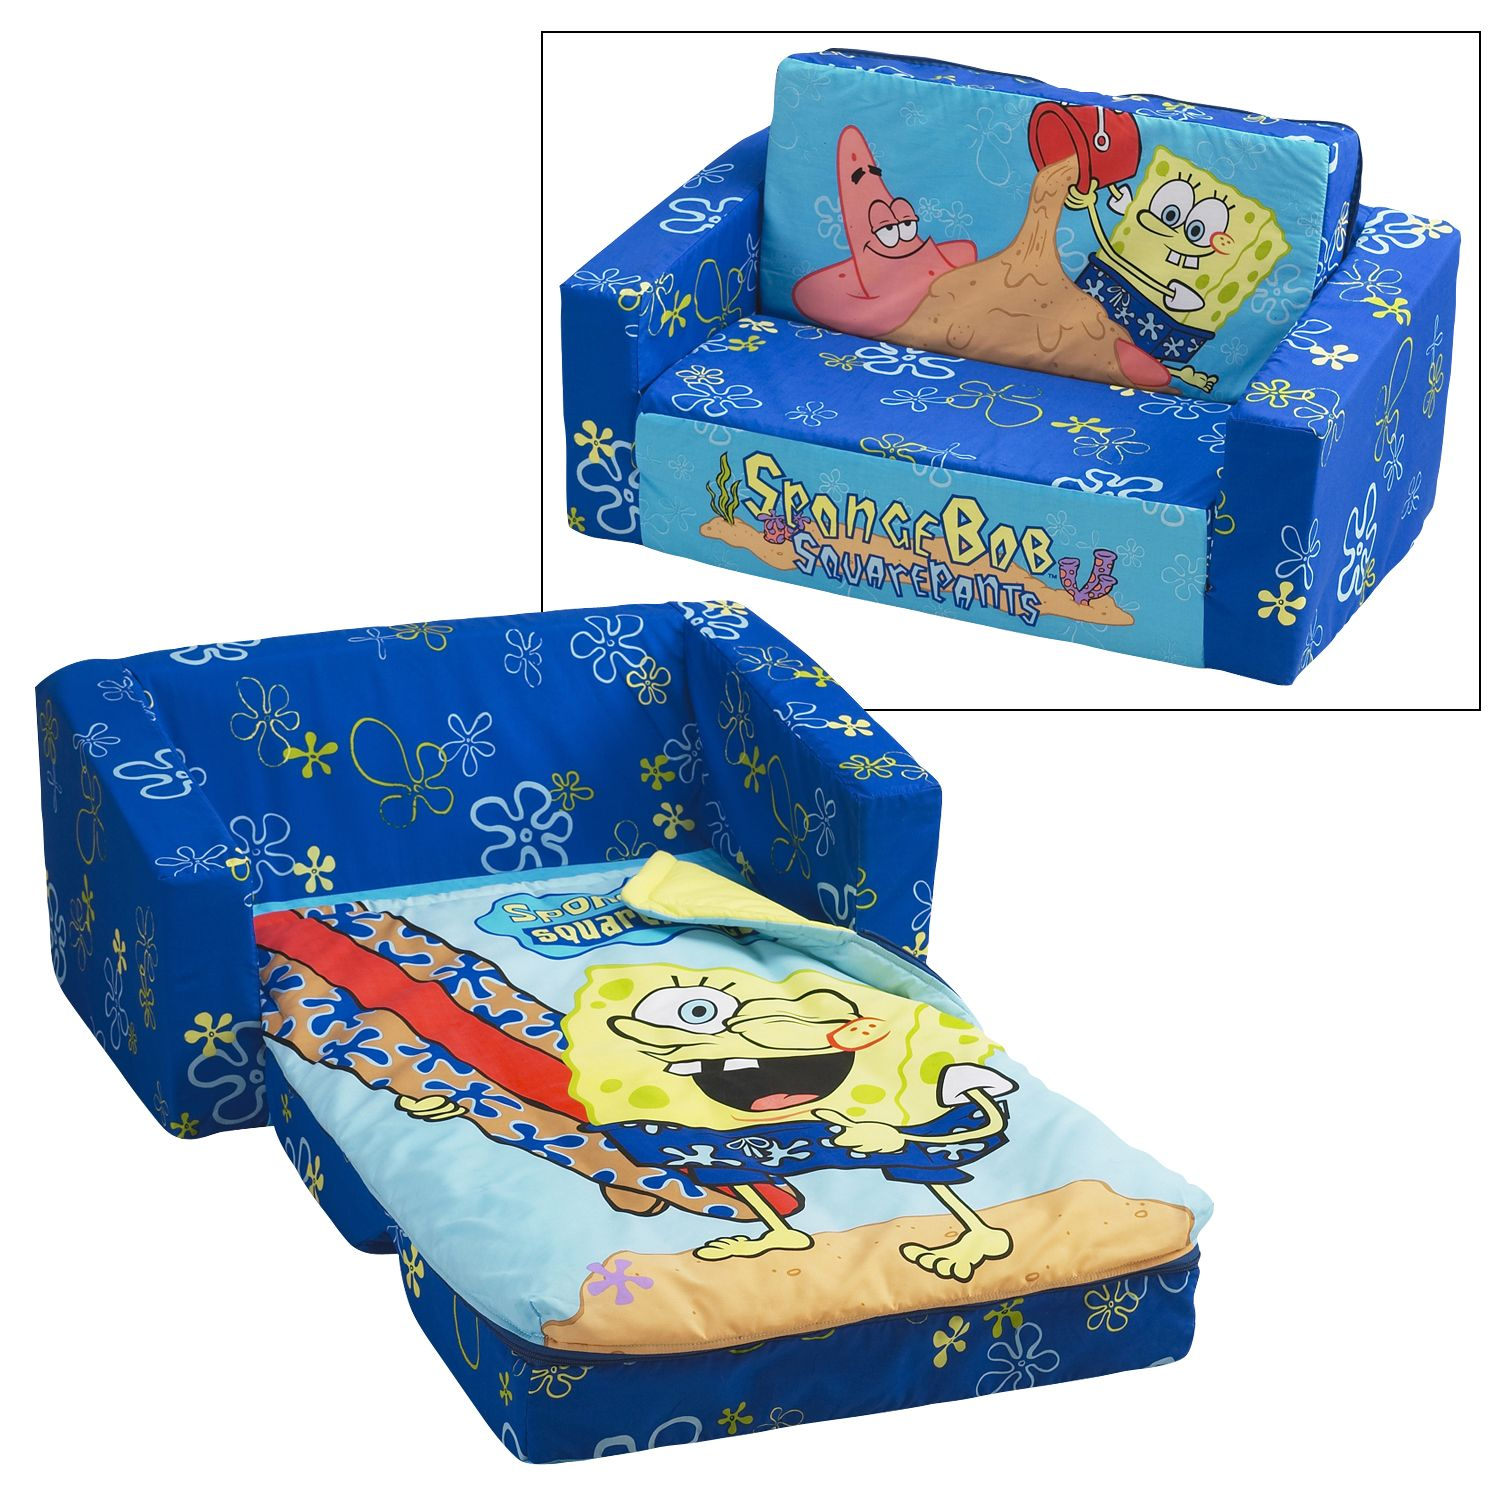 disney princess flip out sofa with slumber bag mia flop storage open spongebob